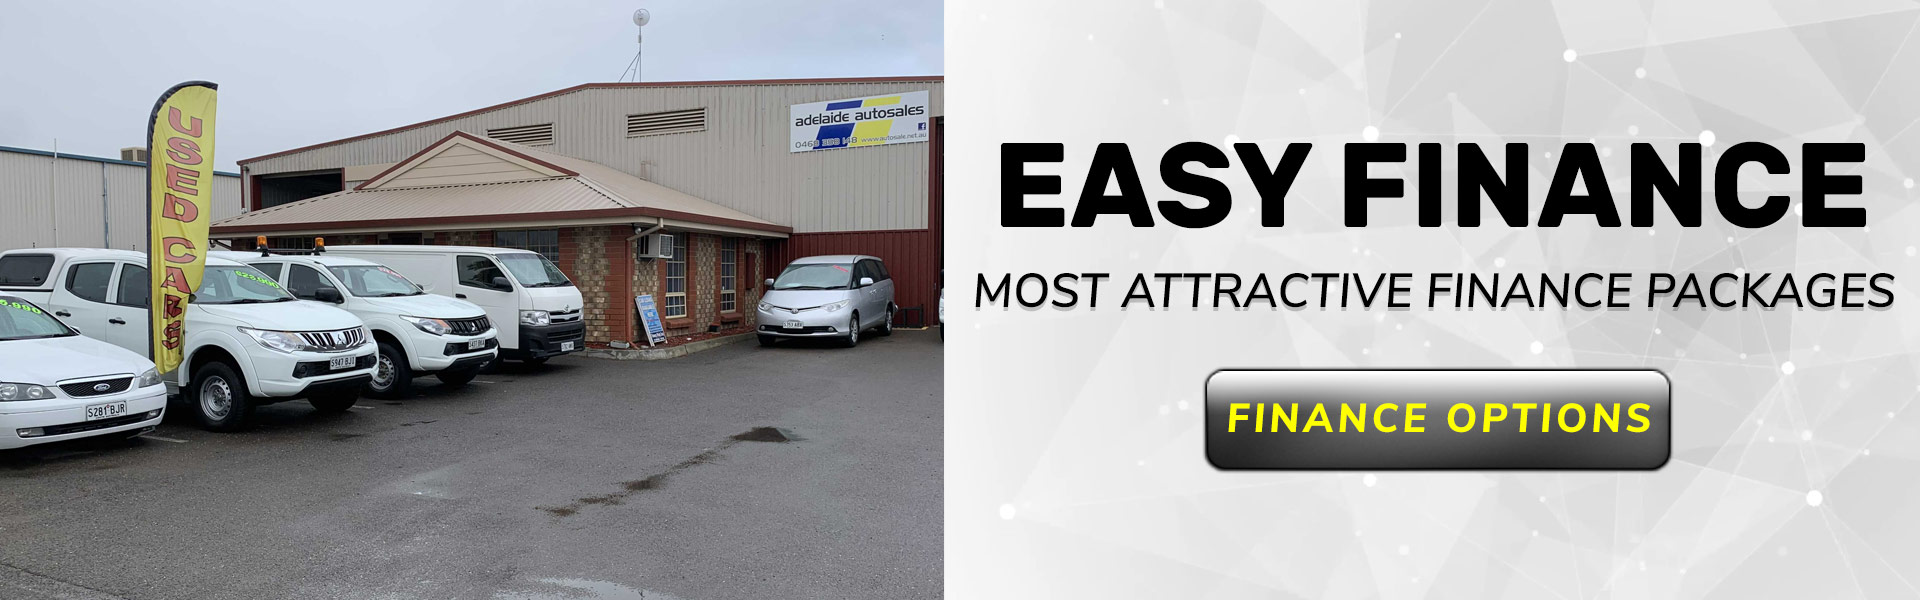 Adelaide Autosales We Have Quality Cars To Suit A Wide Range Of